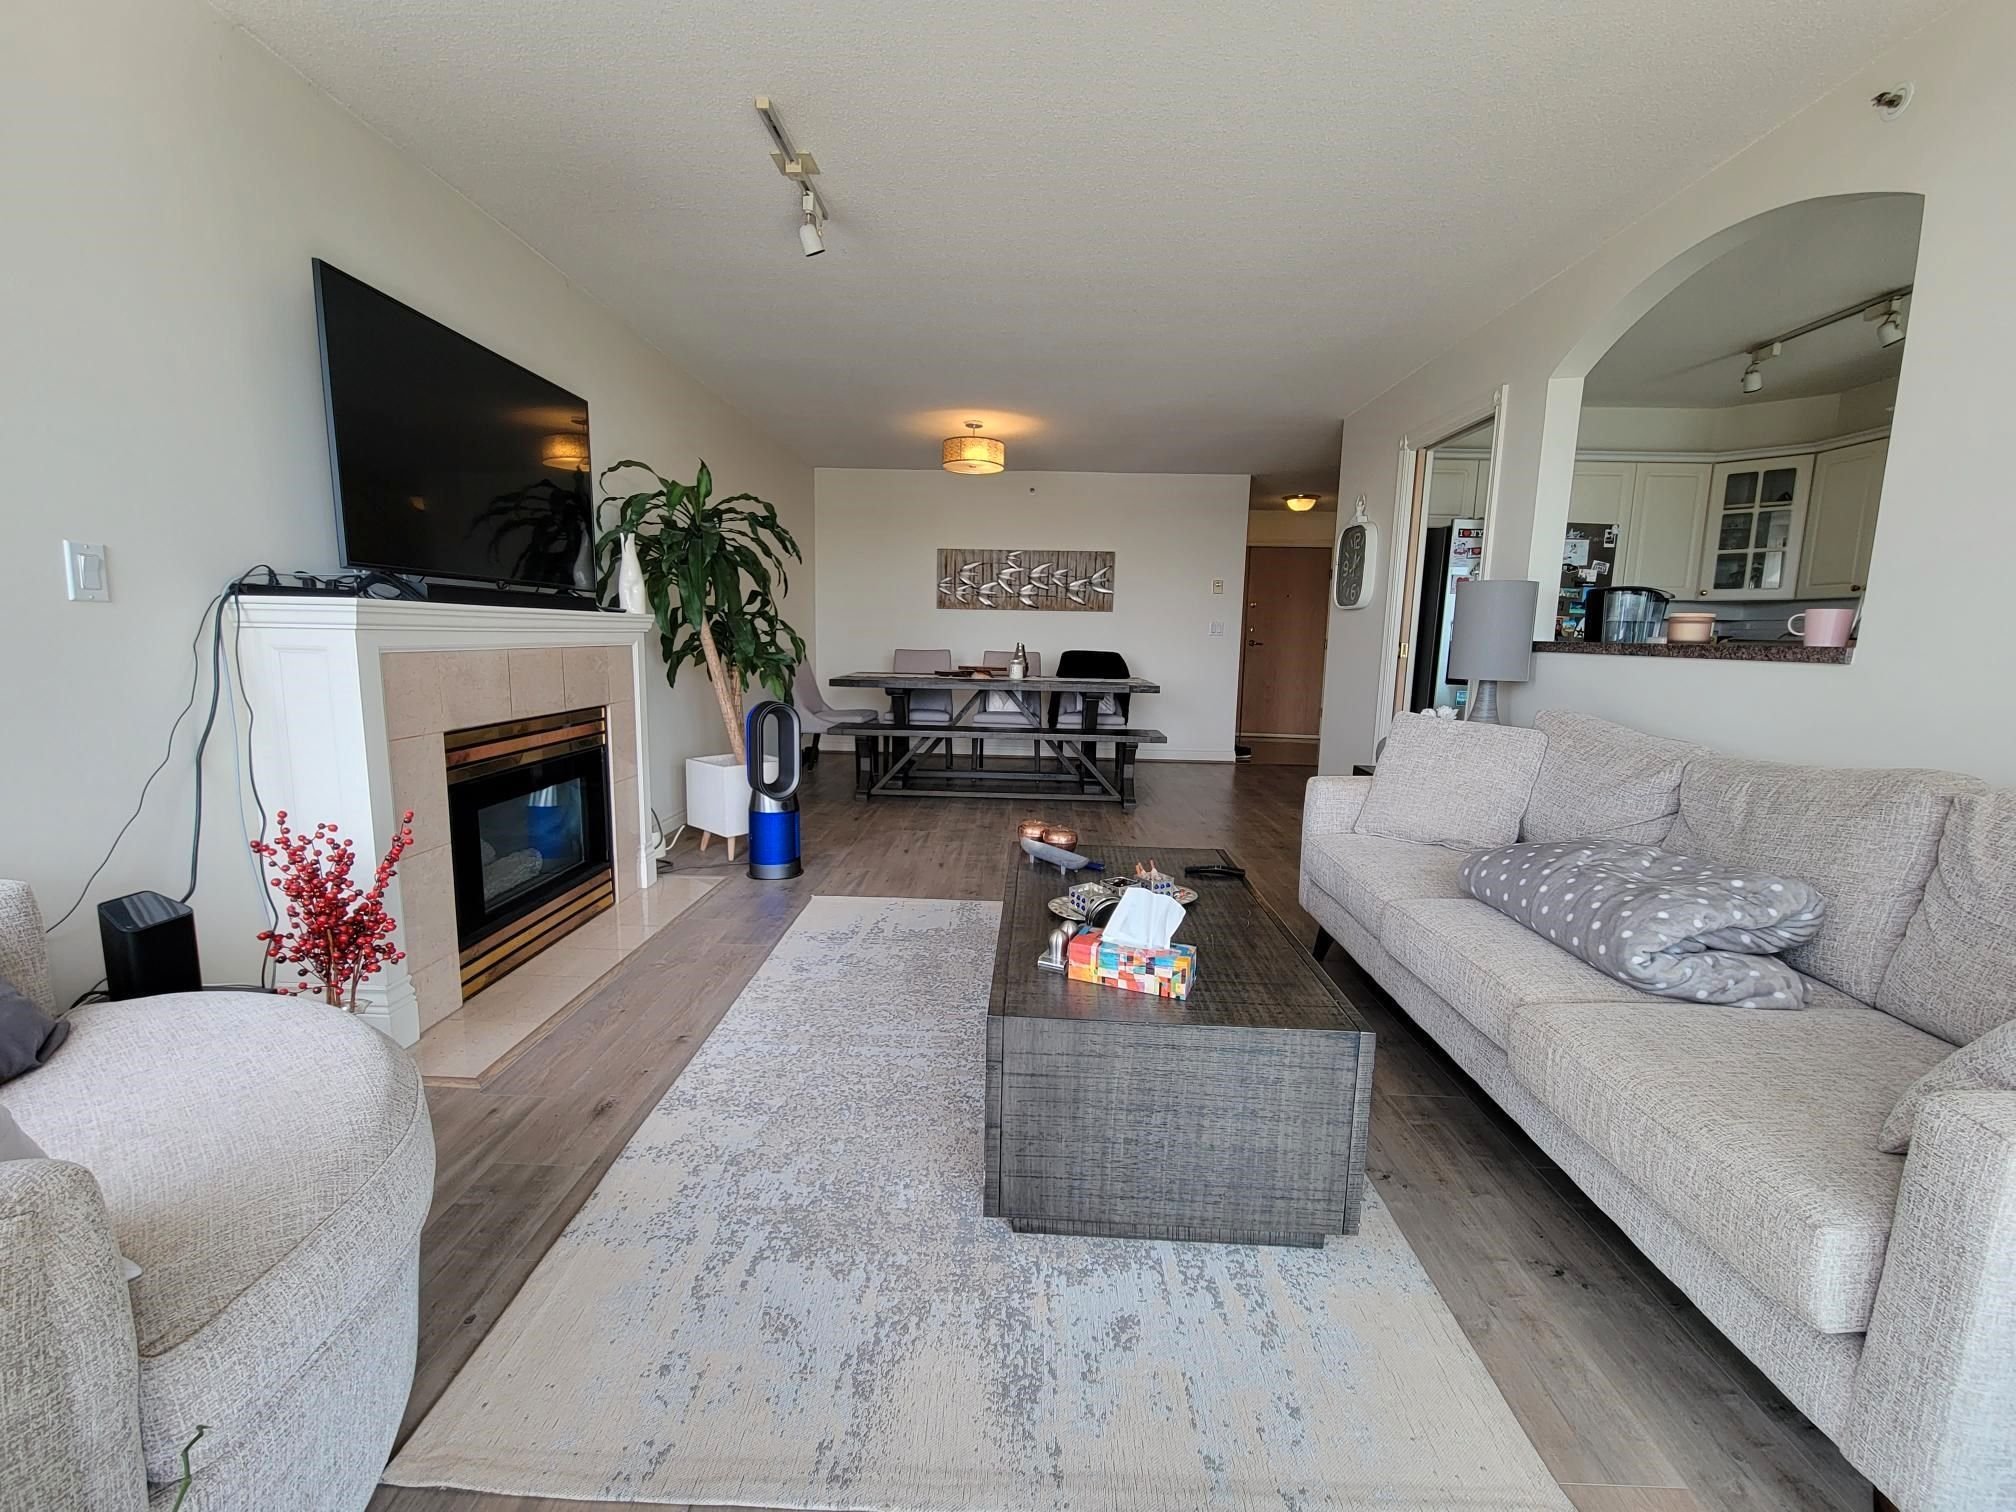 """Main Photo: 9C 328 TAYLOR Way in West Vancouver: Park Royal Condo for sale in """"WEST ROYAL"""" : MLS®# R2625618"""